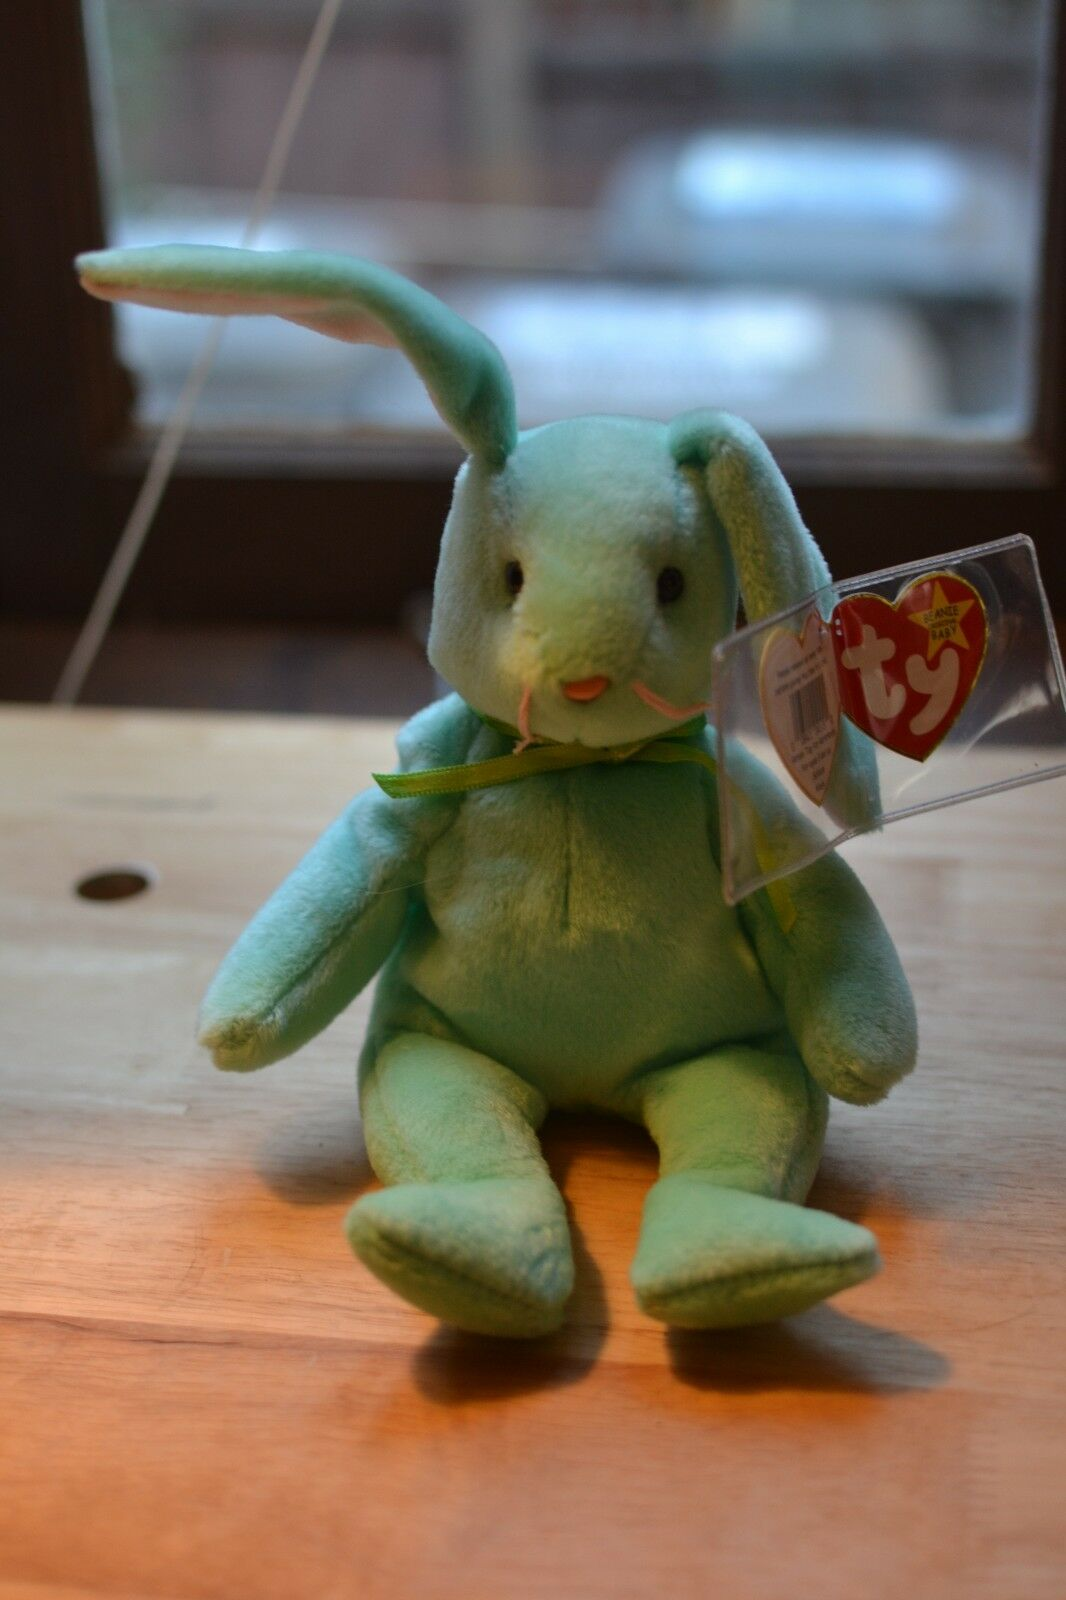 RARE Ty Beanie Baby Flippity the Bunny, 1996 with PVC Pellets, Mint Condition